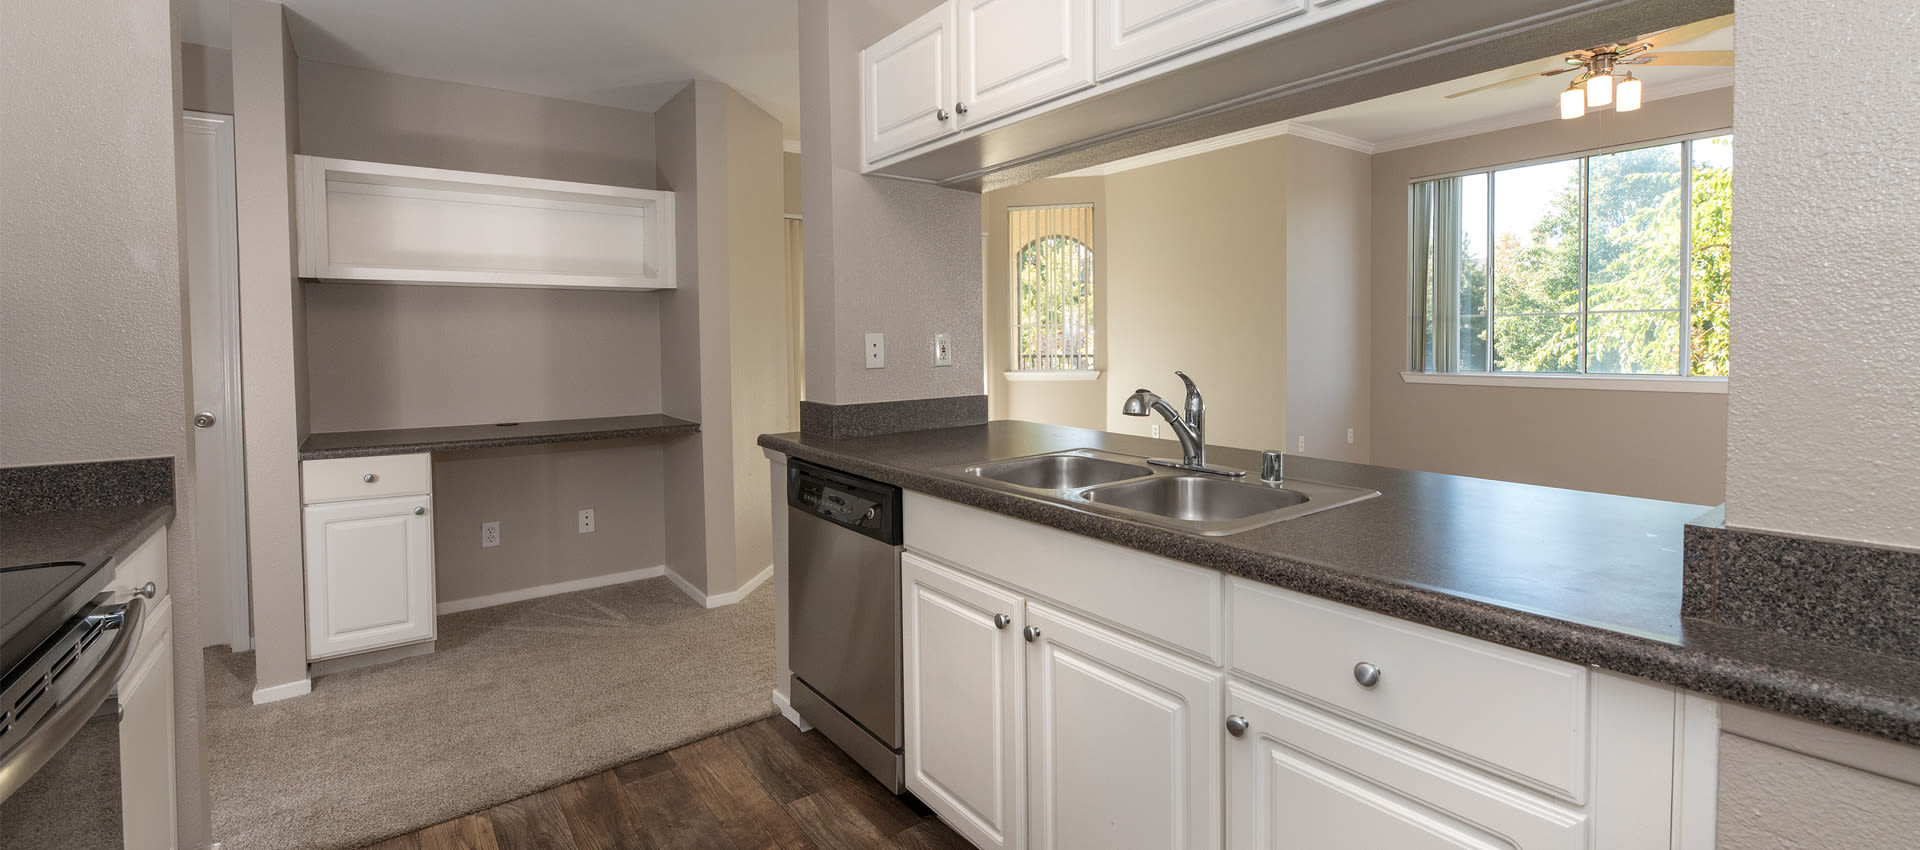 Spacious kitchen at Cross Pointe Apartment Homes in Antioch, California